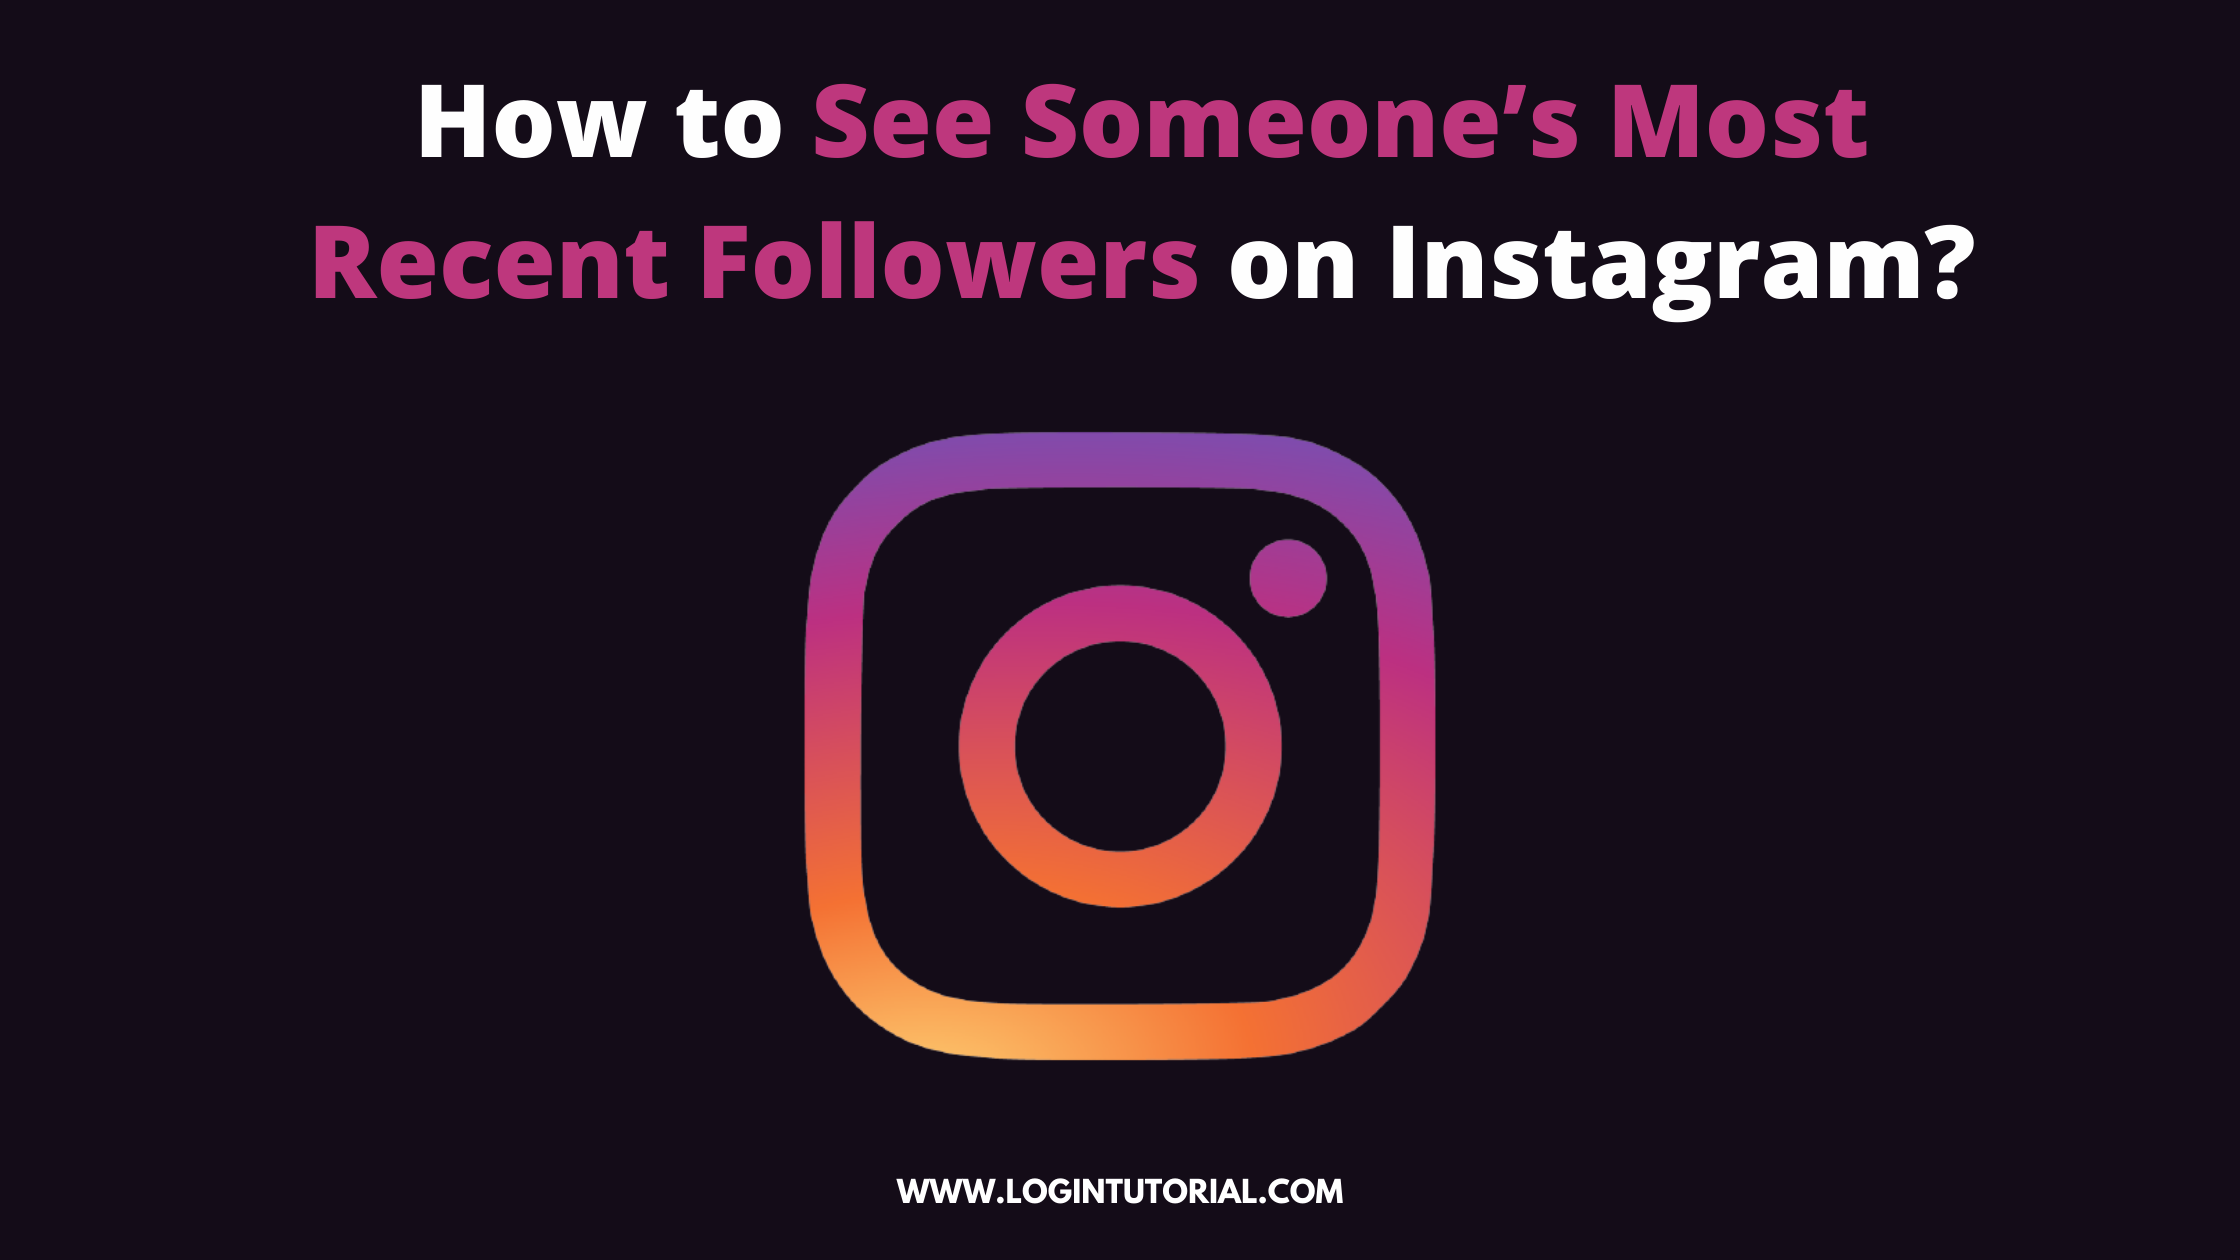 How to See Someone's Most Recent Followers on Instagram?